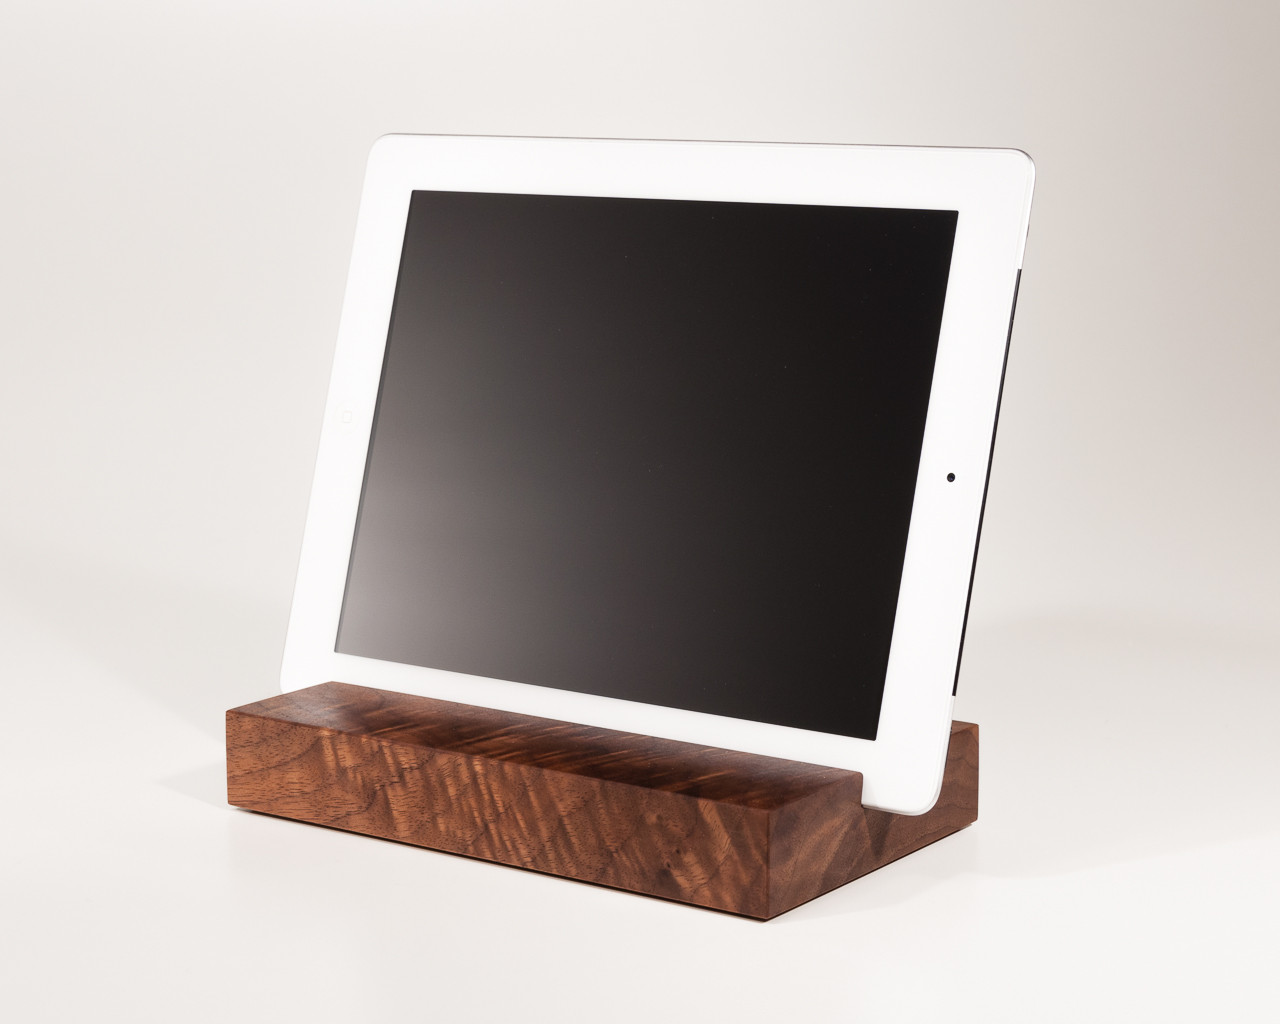 ipad und tablet halterung halter aus holz und beton trimborn eich halterungen f r ipad. Black Bedroom Furniture Sets. Home Design Ideas